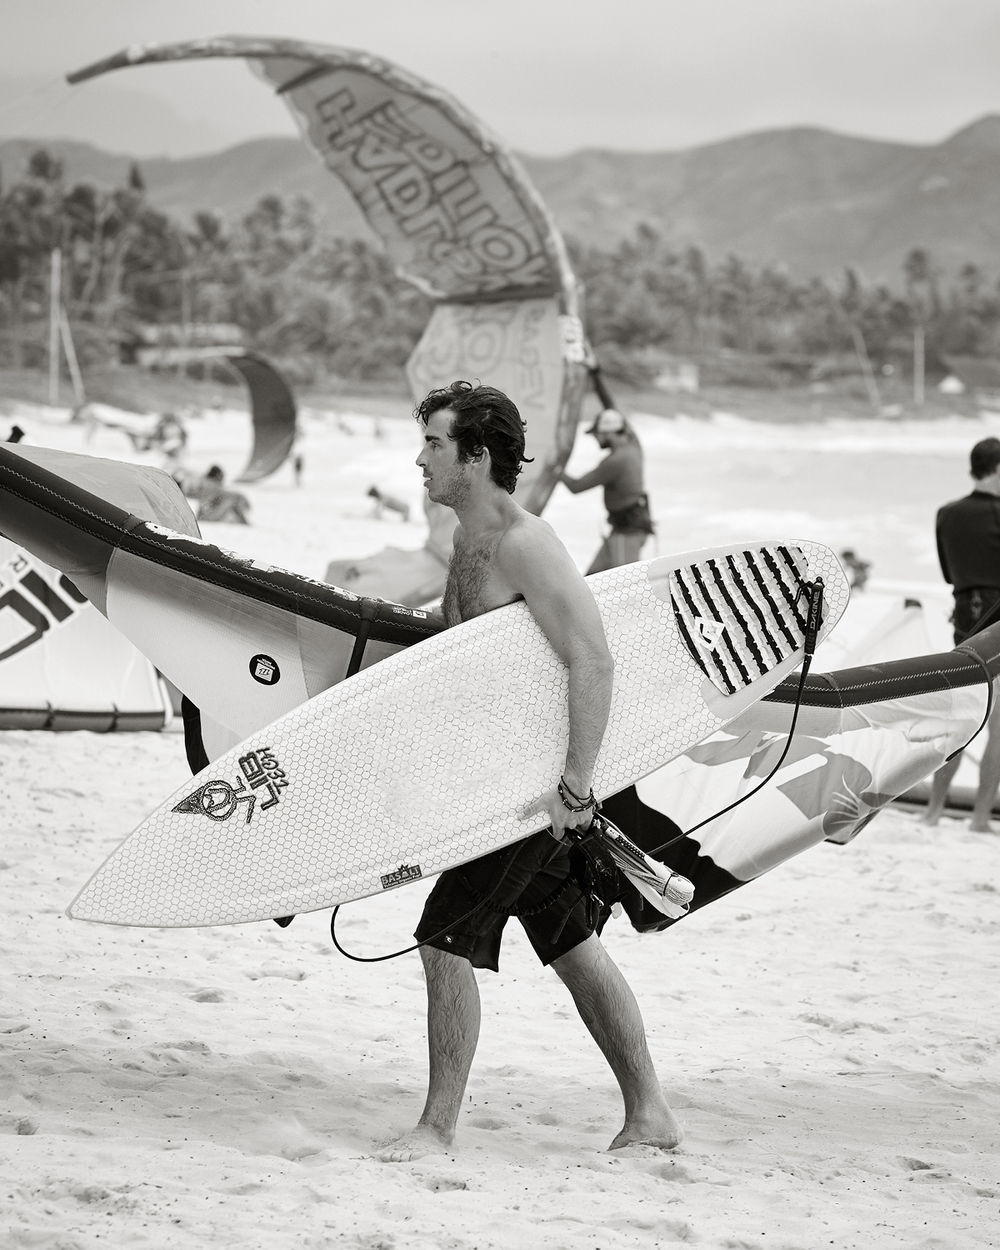 KITEBOARDERS AT KAILUA BEACH PARK